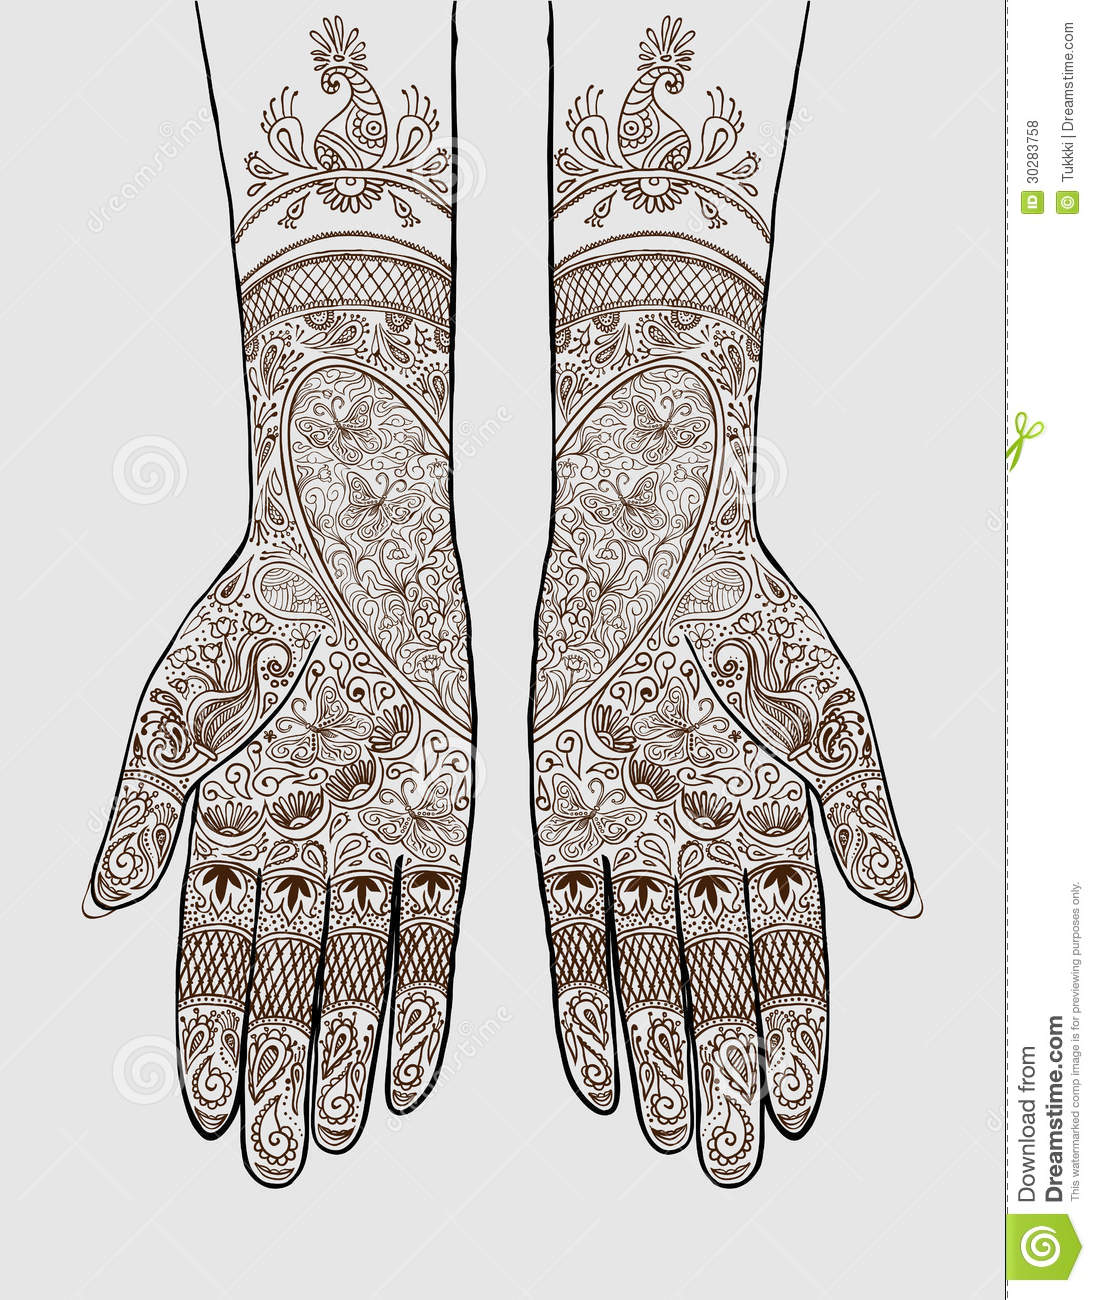 0ac027629 Hands with henna tattoo stock vector. Illustration of drawing - 30283758